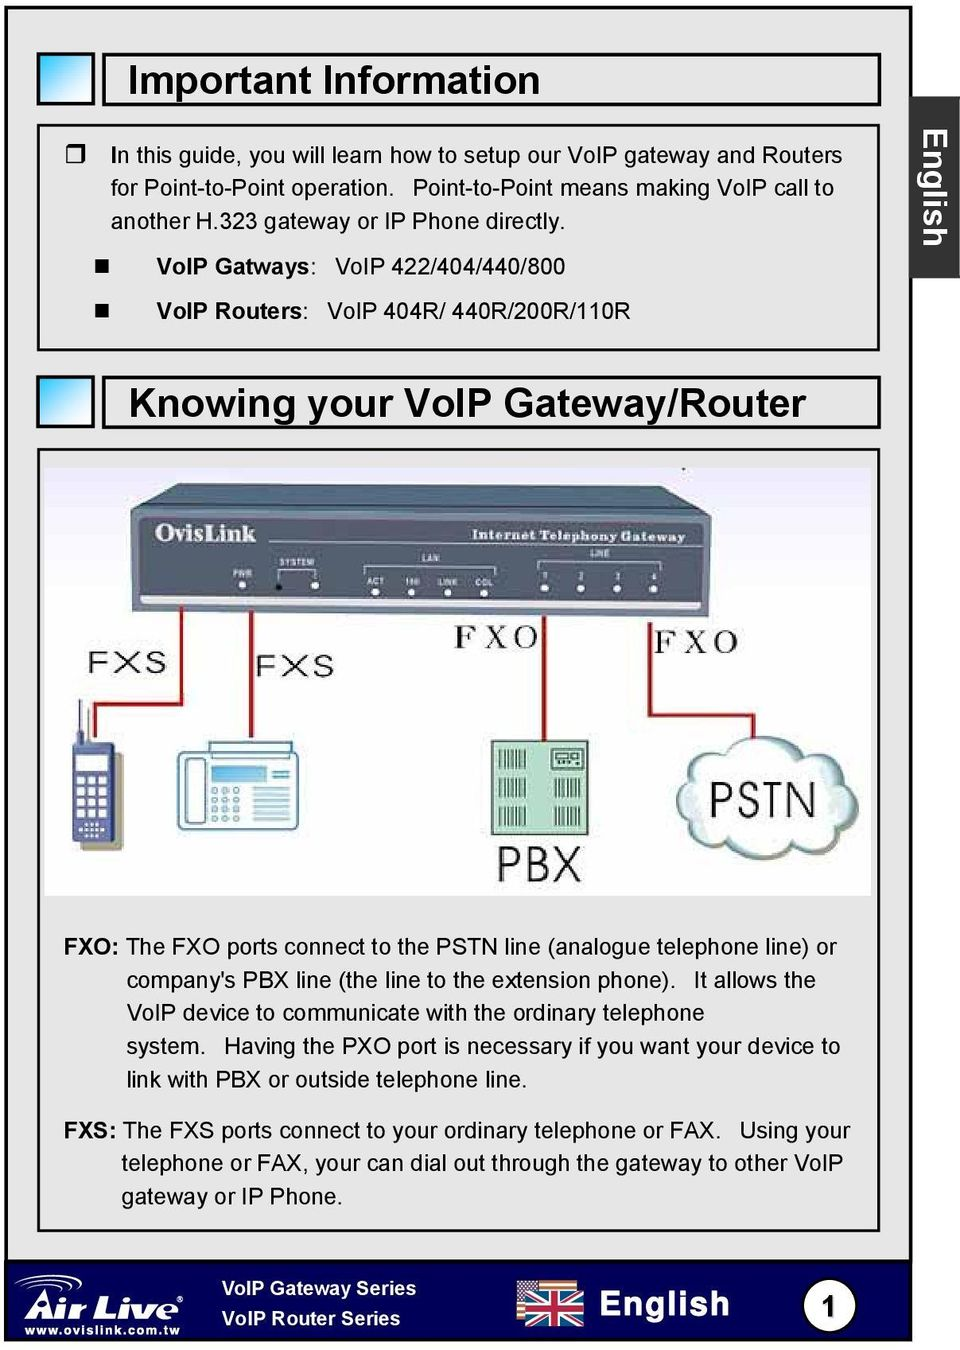 VoIP Gatways: VoIP 422/404/440/800 VoIP Routers: VoIP 404R/ 440R/200R/110R Knowing your VoIP Gateway/Router FXO: The FXO ports connect to the PSTN line (analogue telephone line) or company's PBX